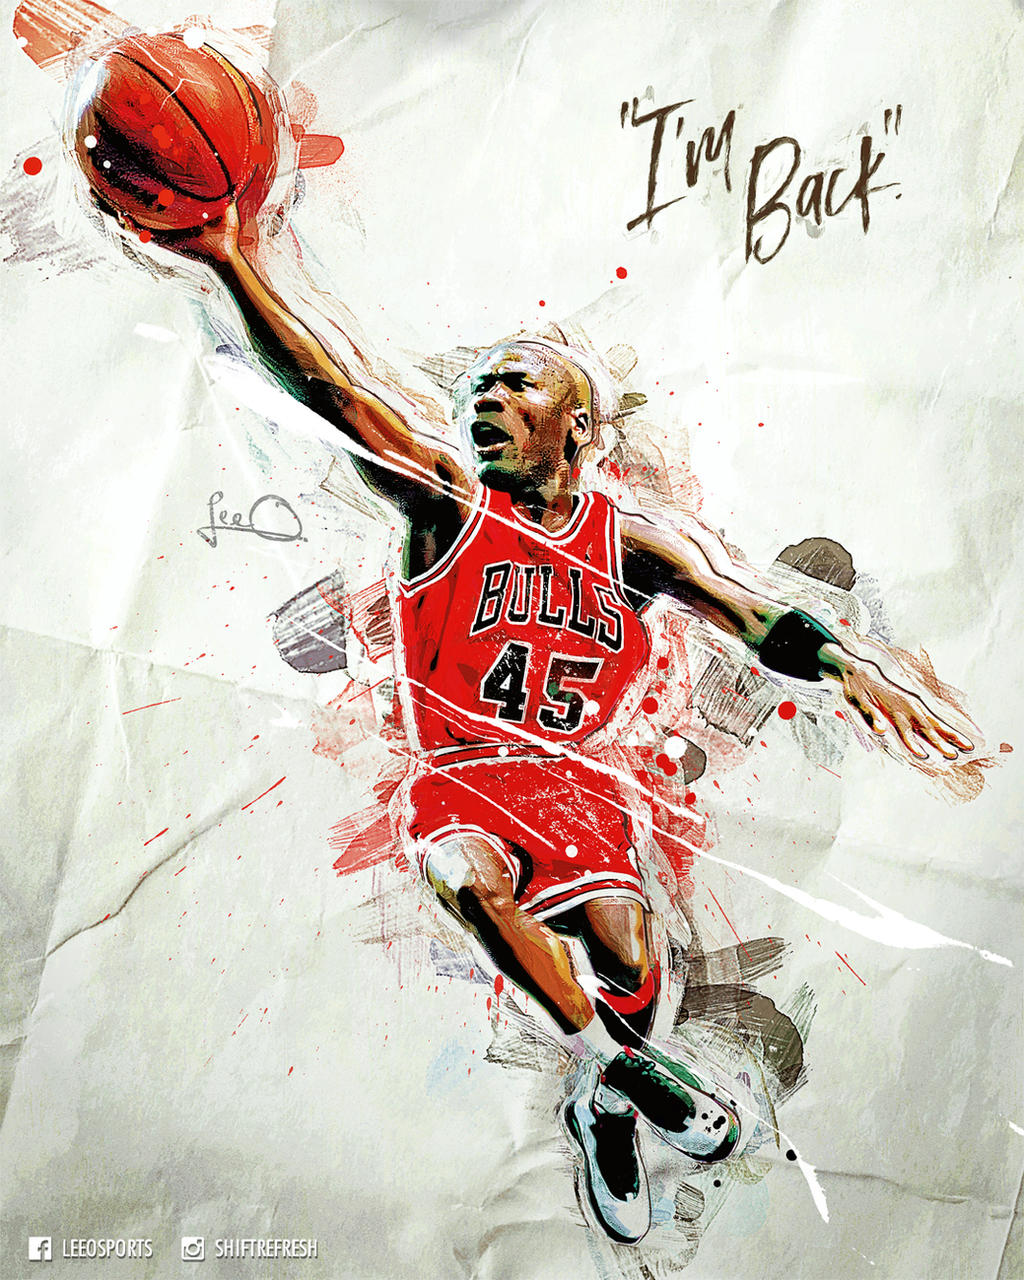 Michael Jordan NBA Caricature Poster by skythlee on DeviantArt